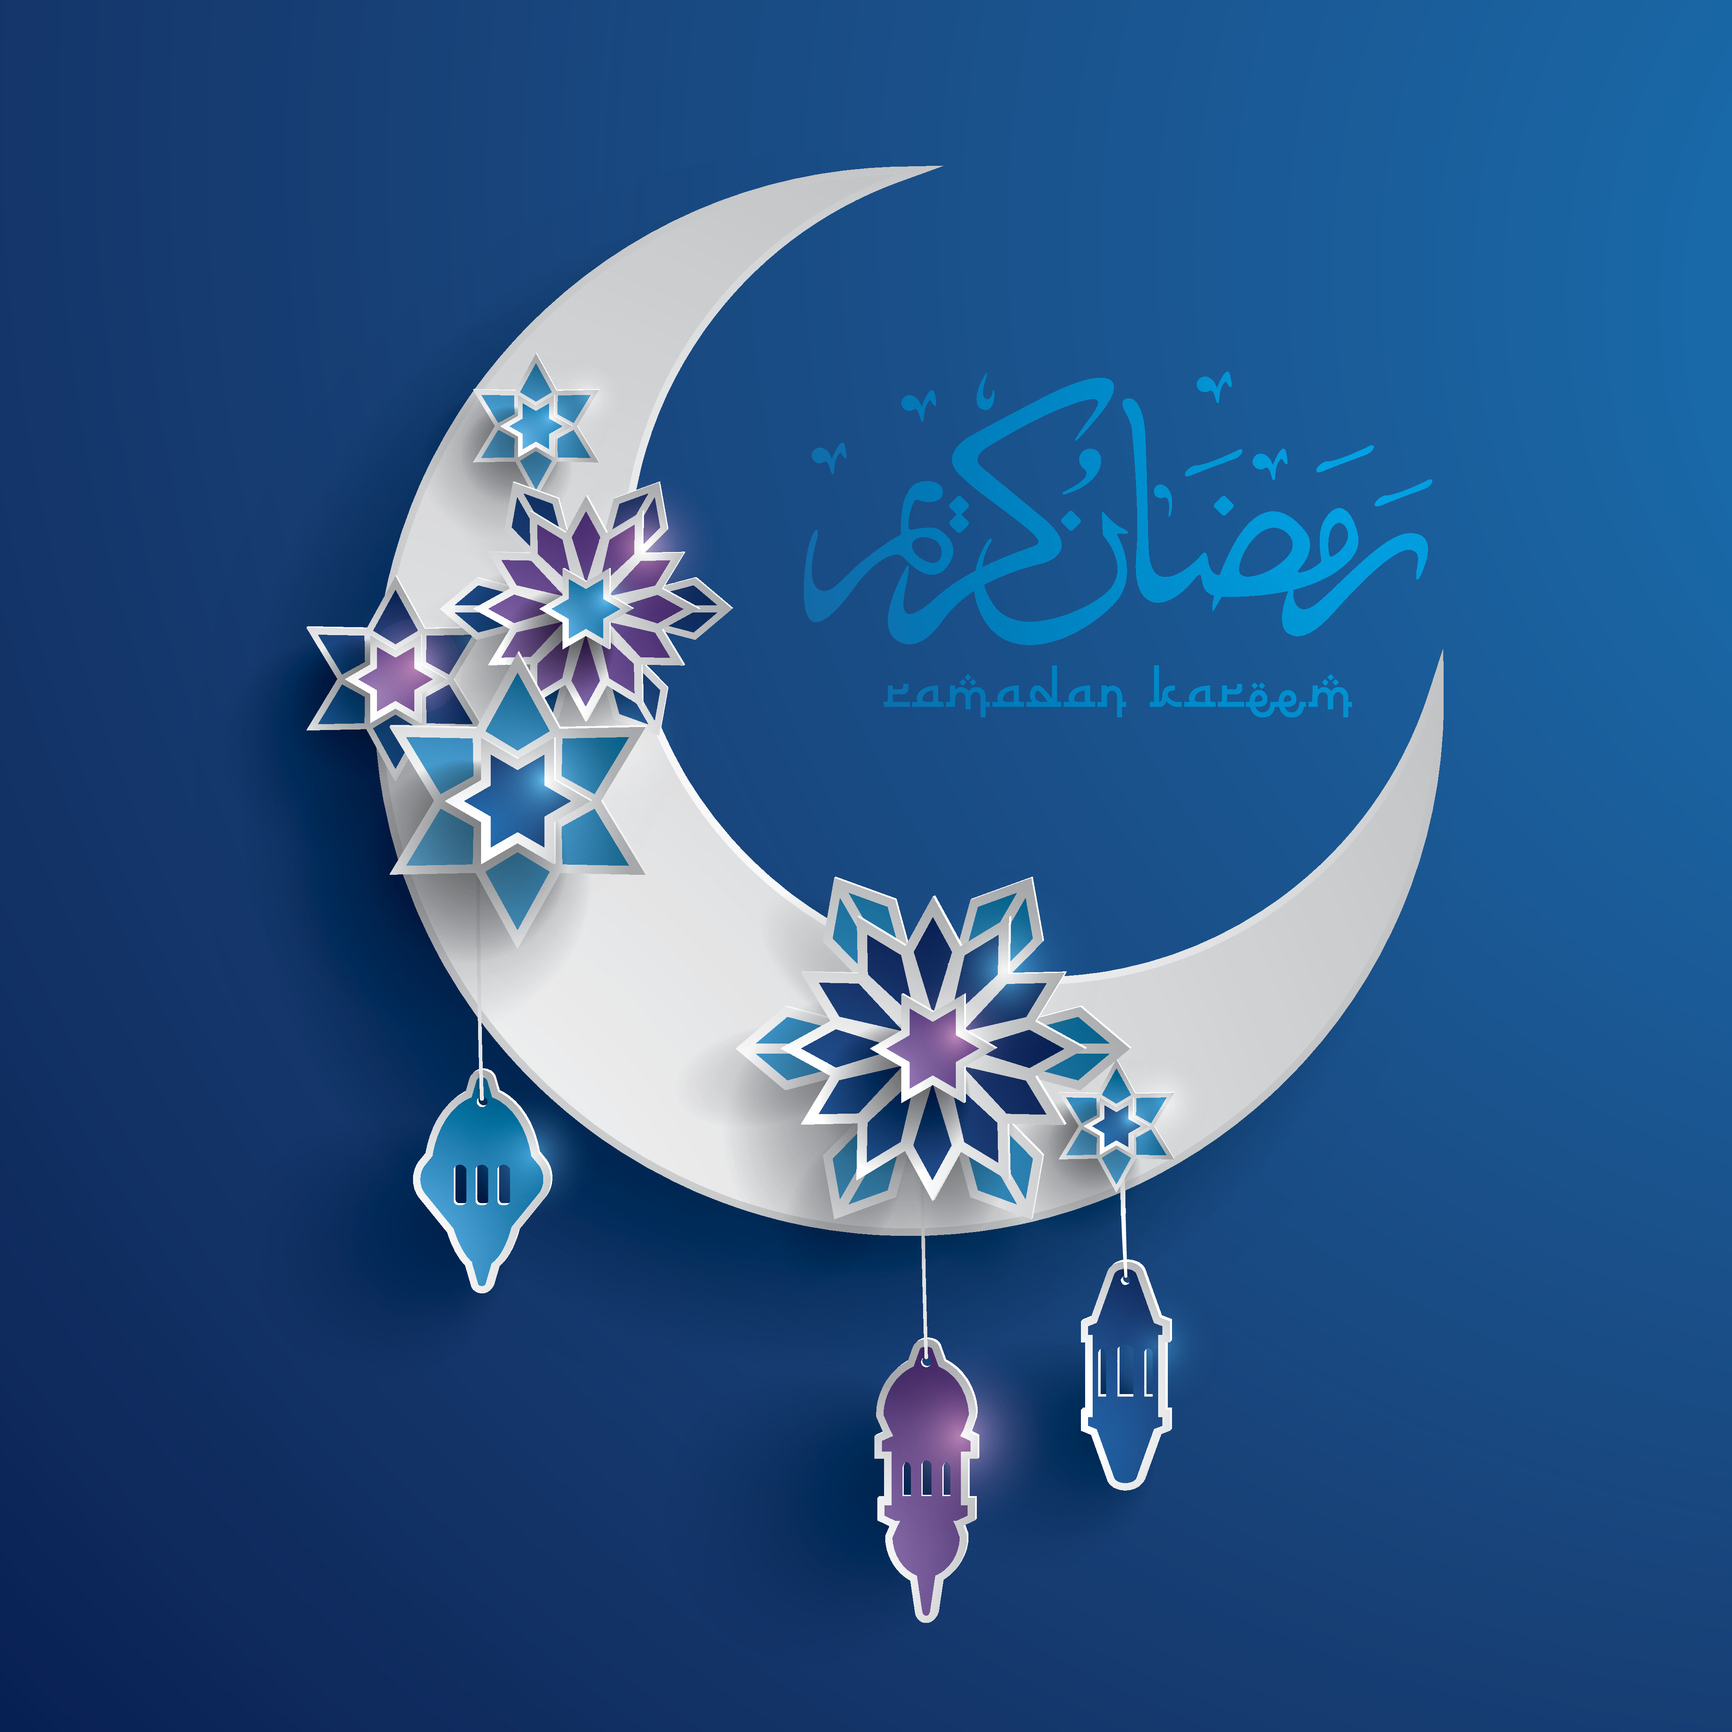 A depiction of the Islamic moon